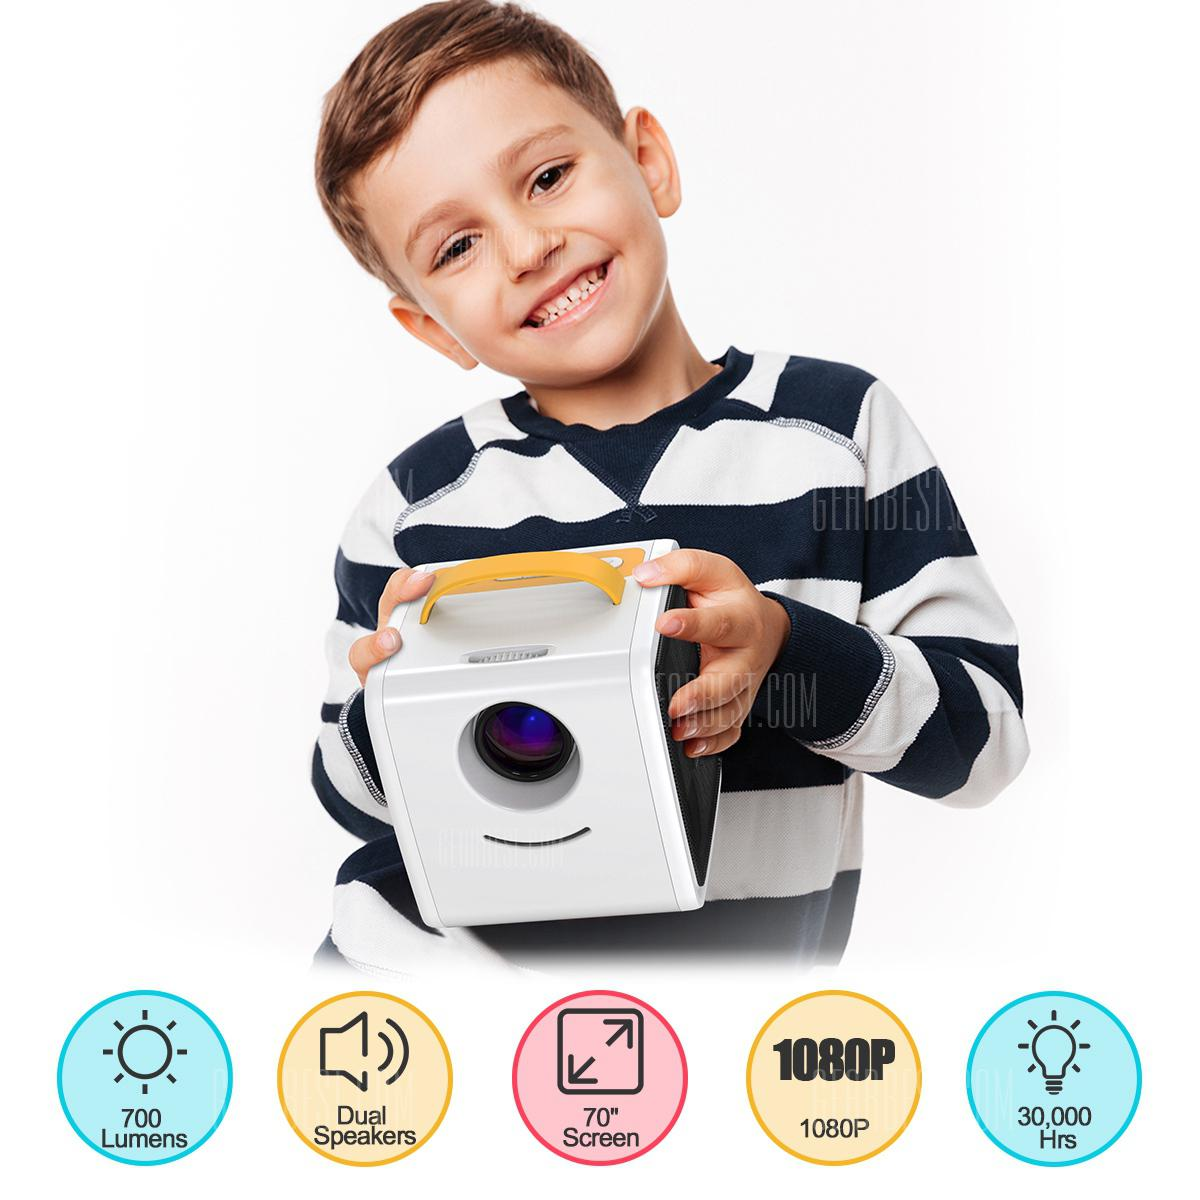 Excelvan Q2 Children's Toy Projector